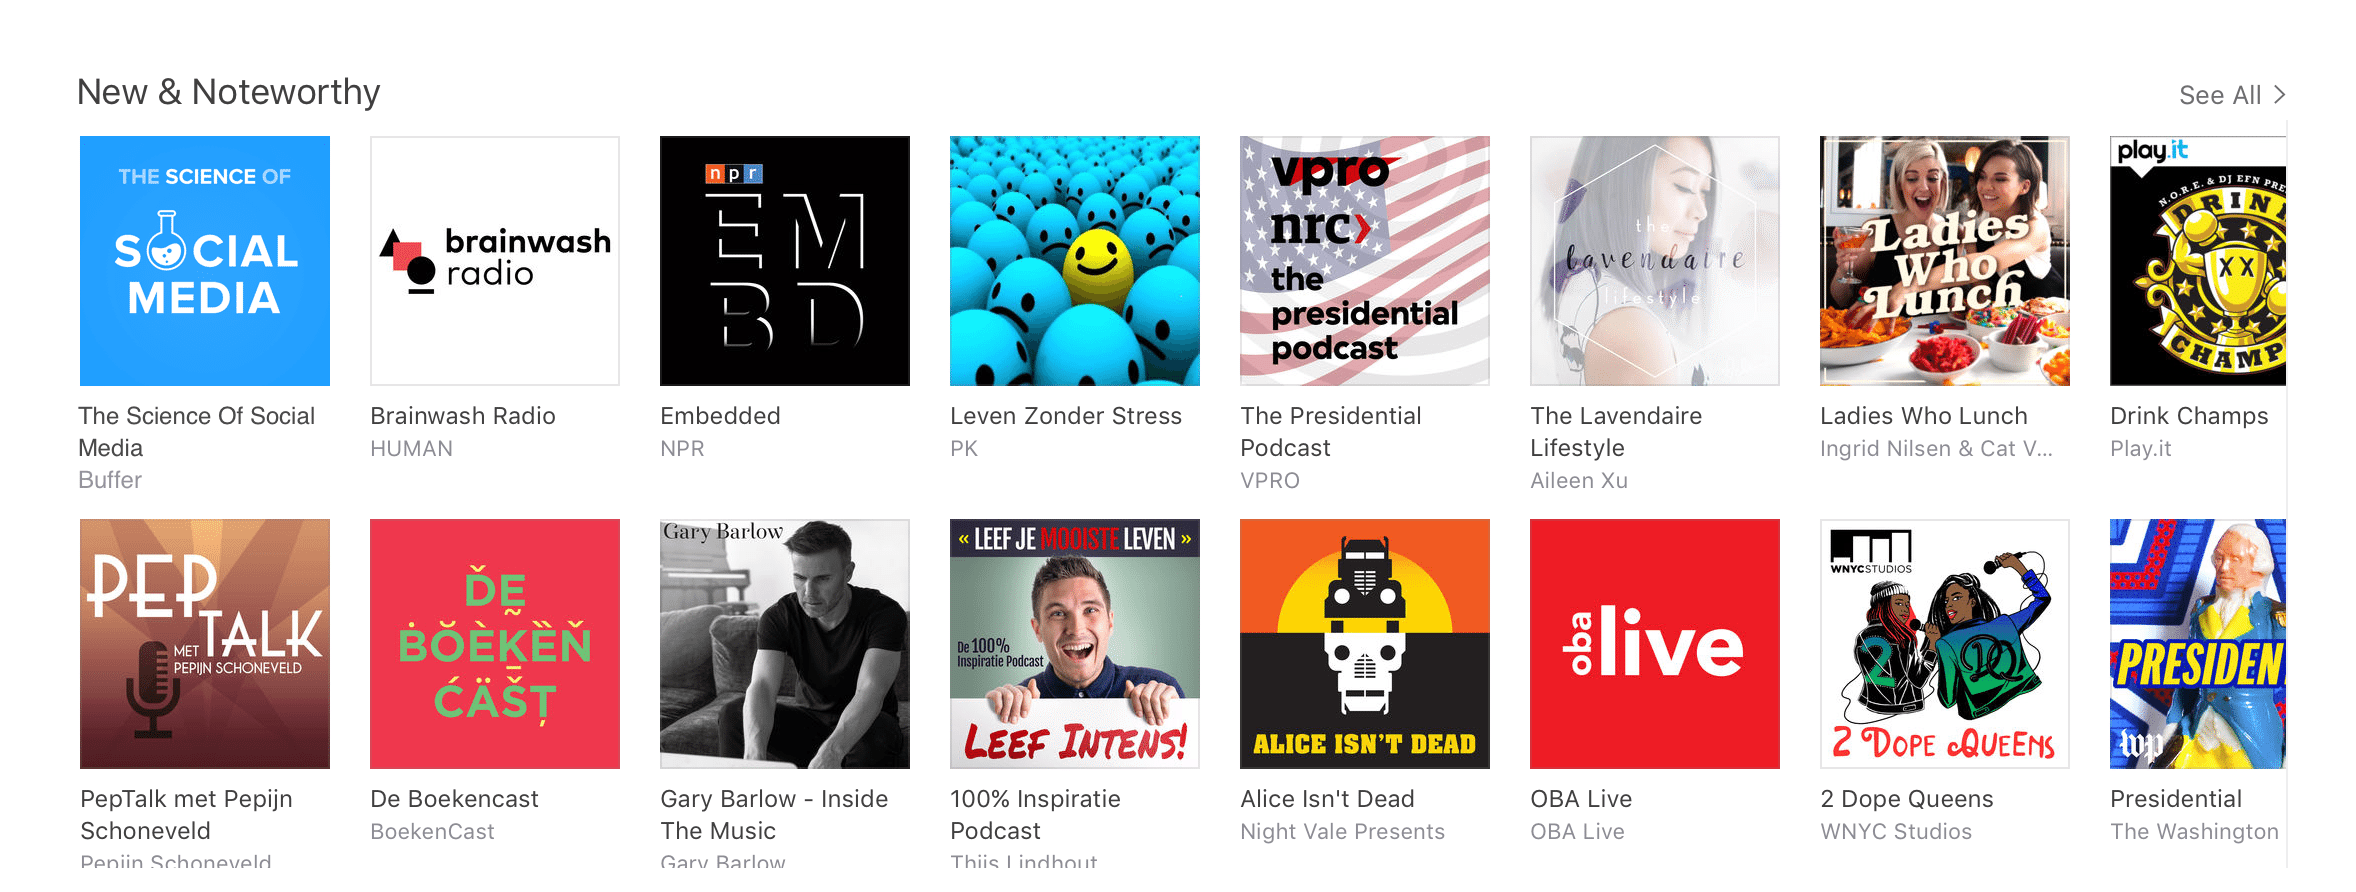 itunes-new-and-noteworthy